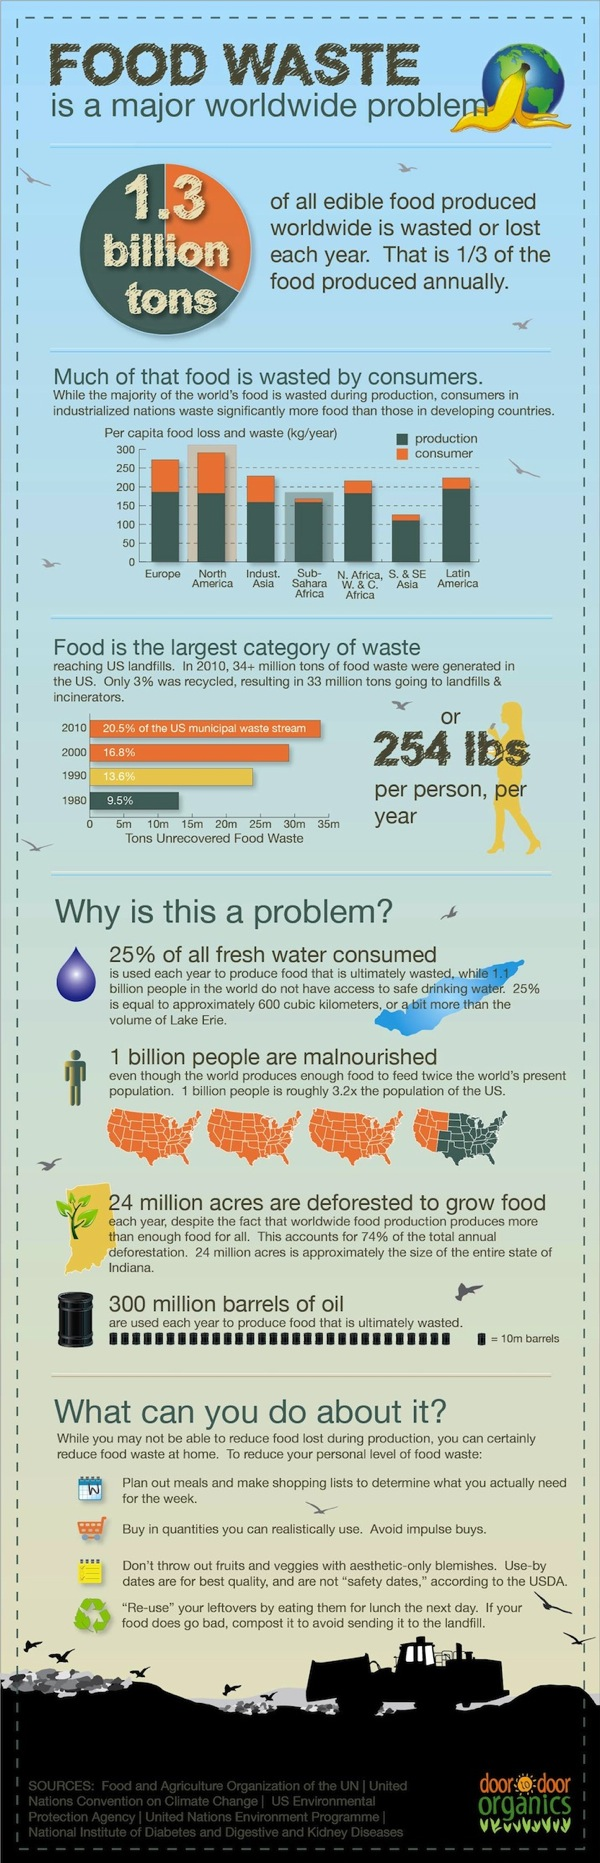 Food Waste Around the Globe